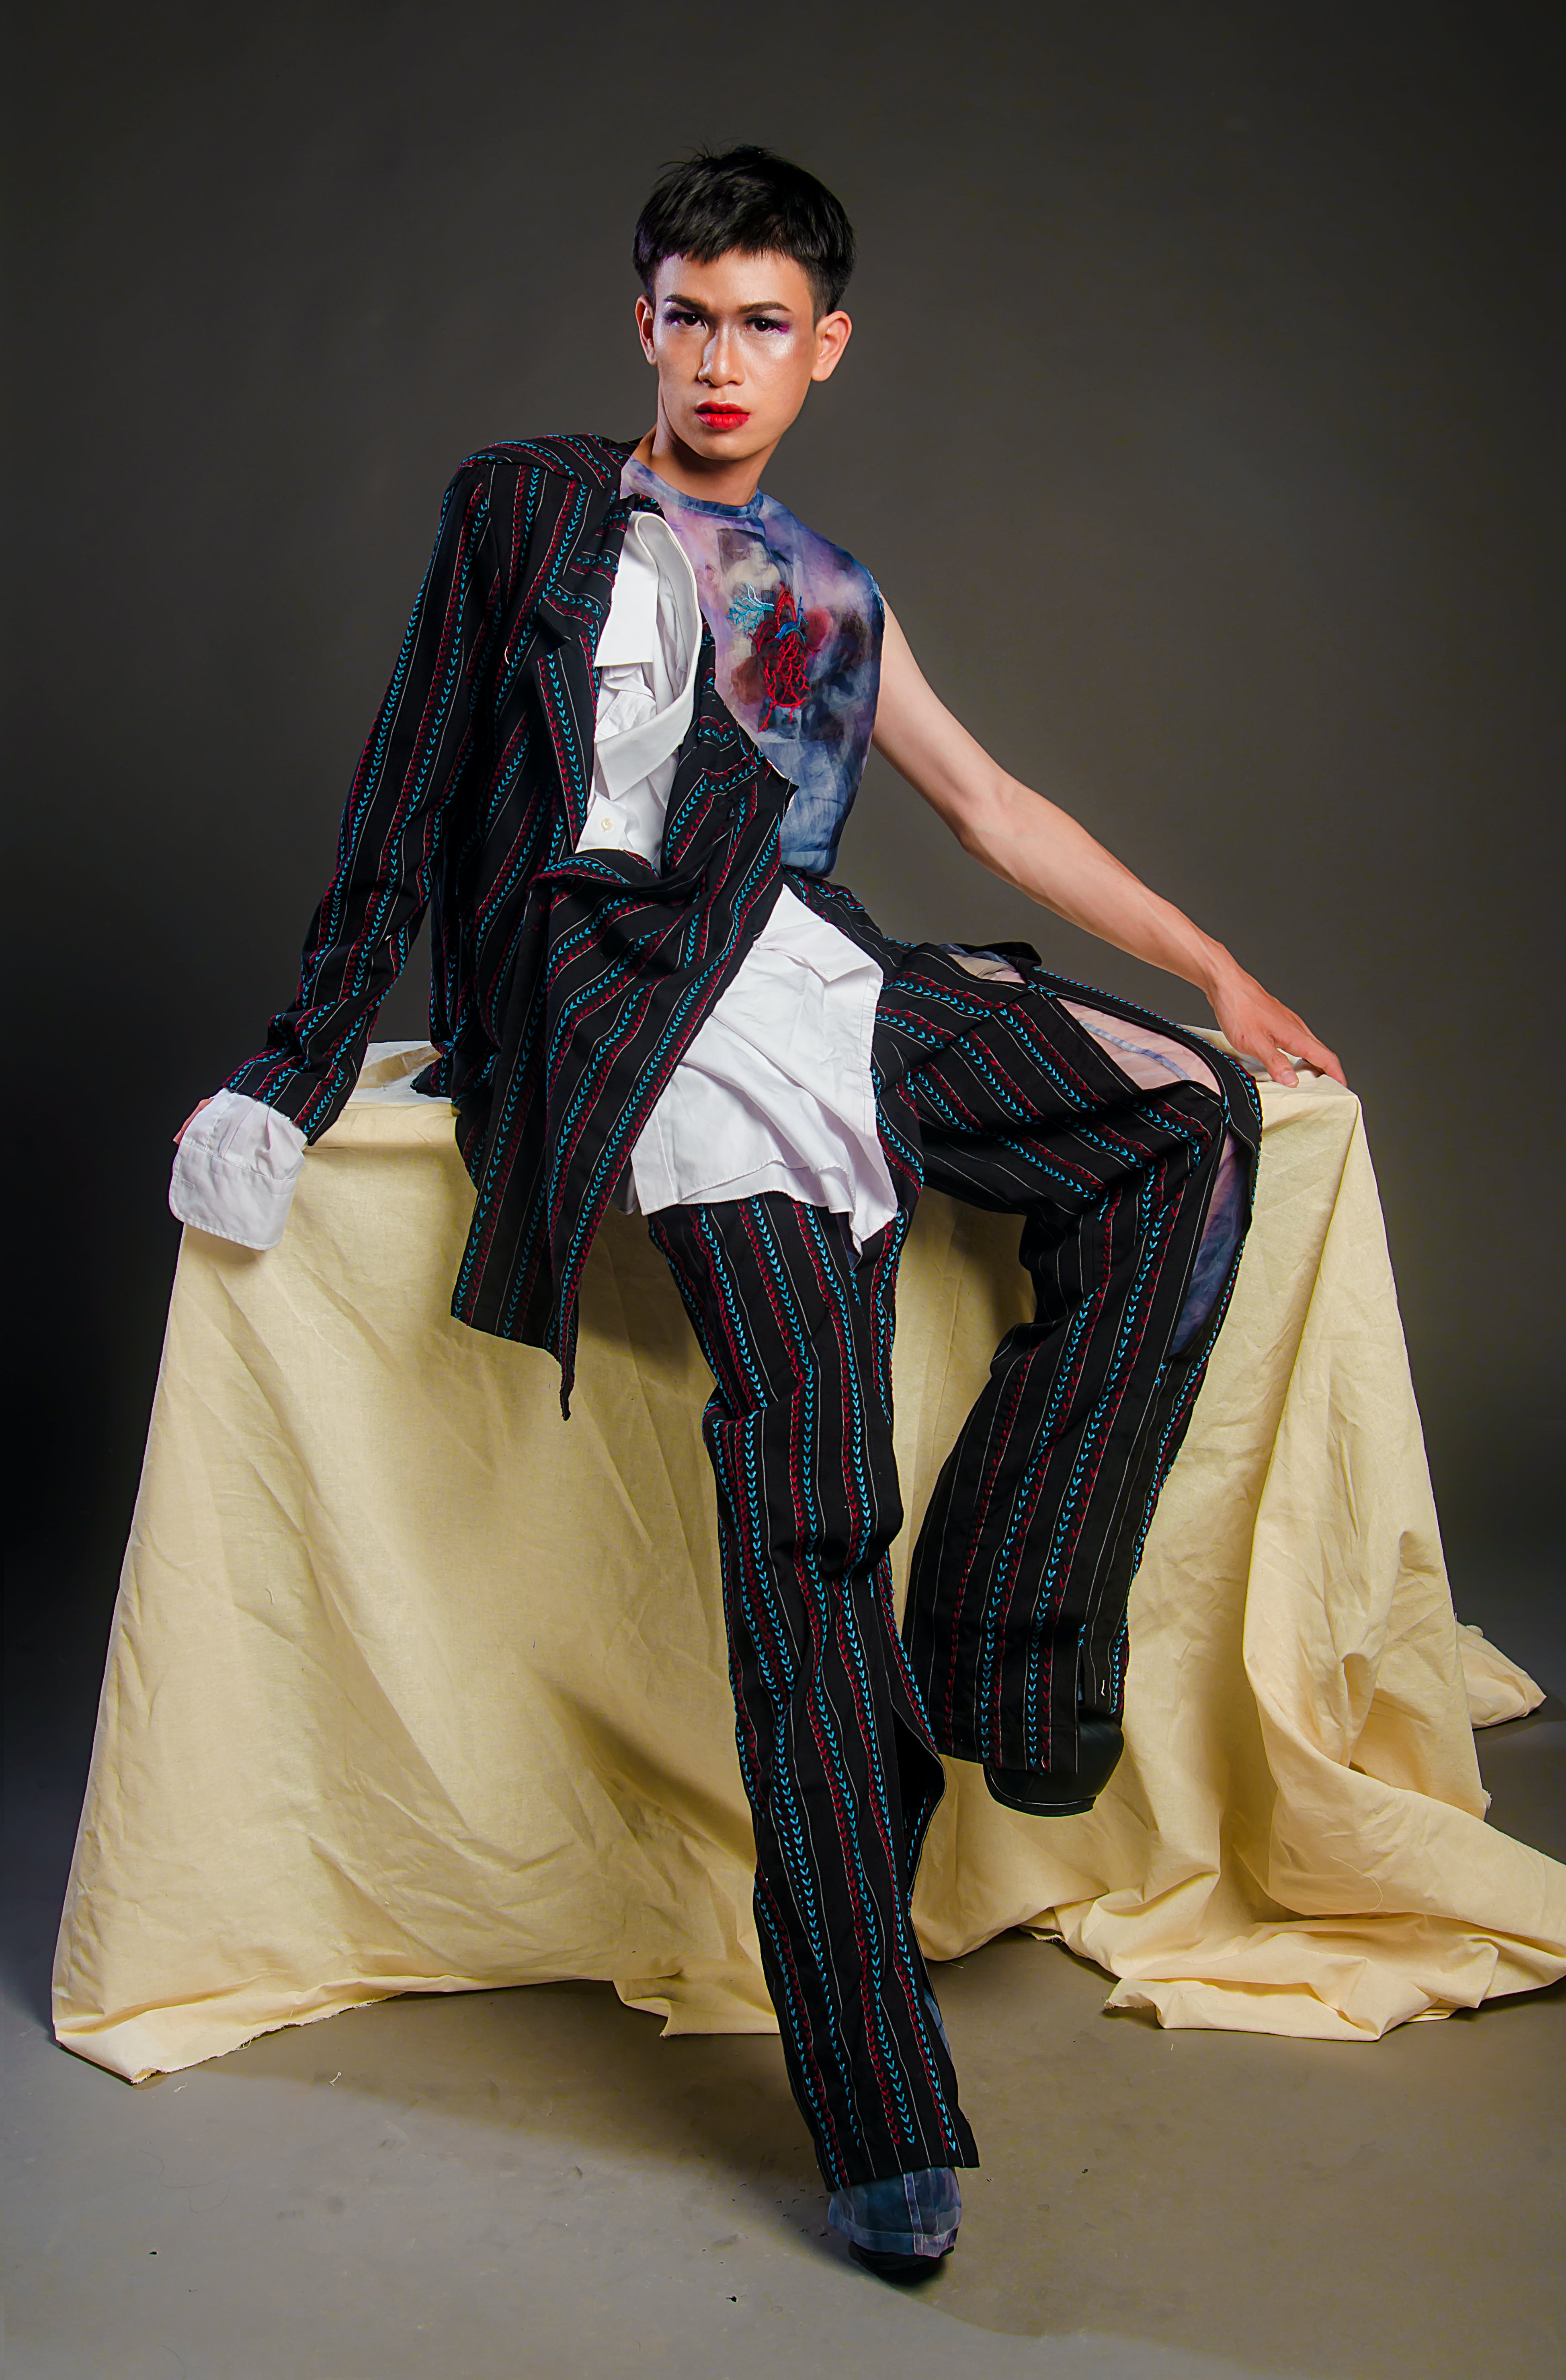 Photography Of Man Wearing Multi-colored Pinstripe Outfit